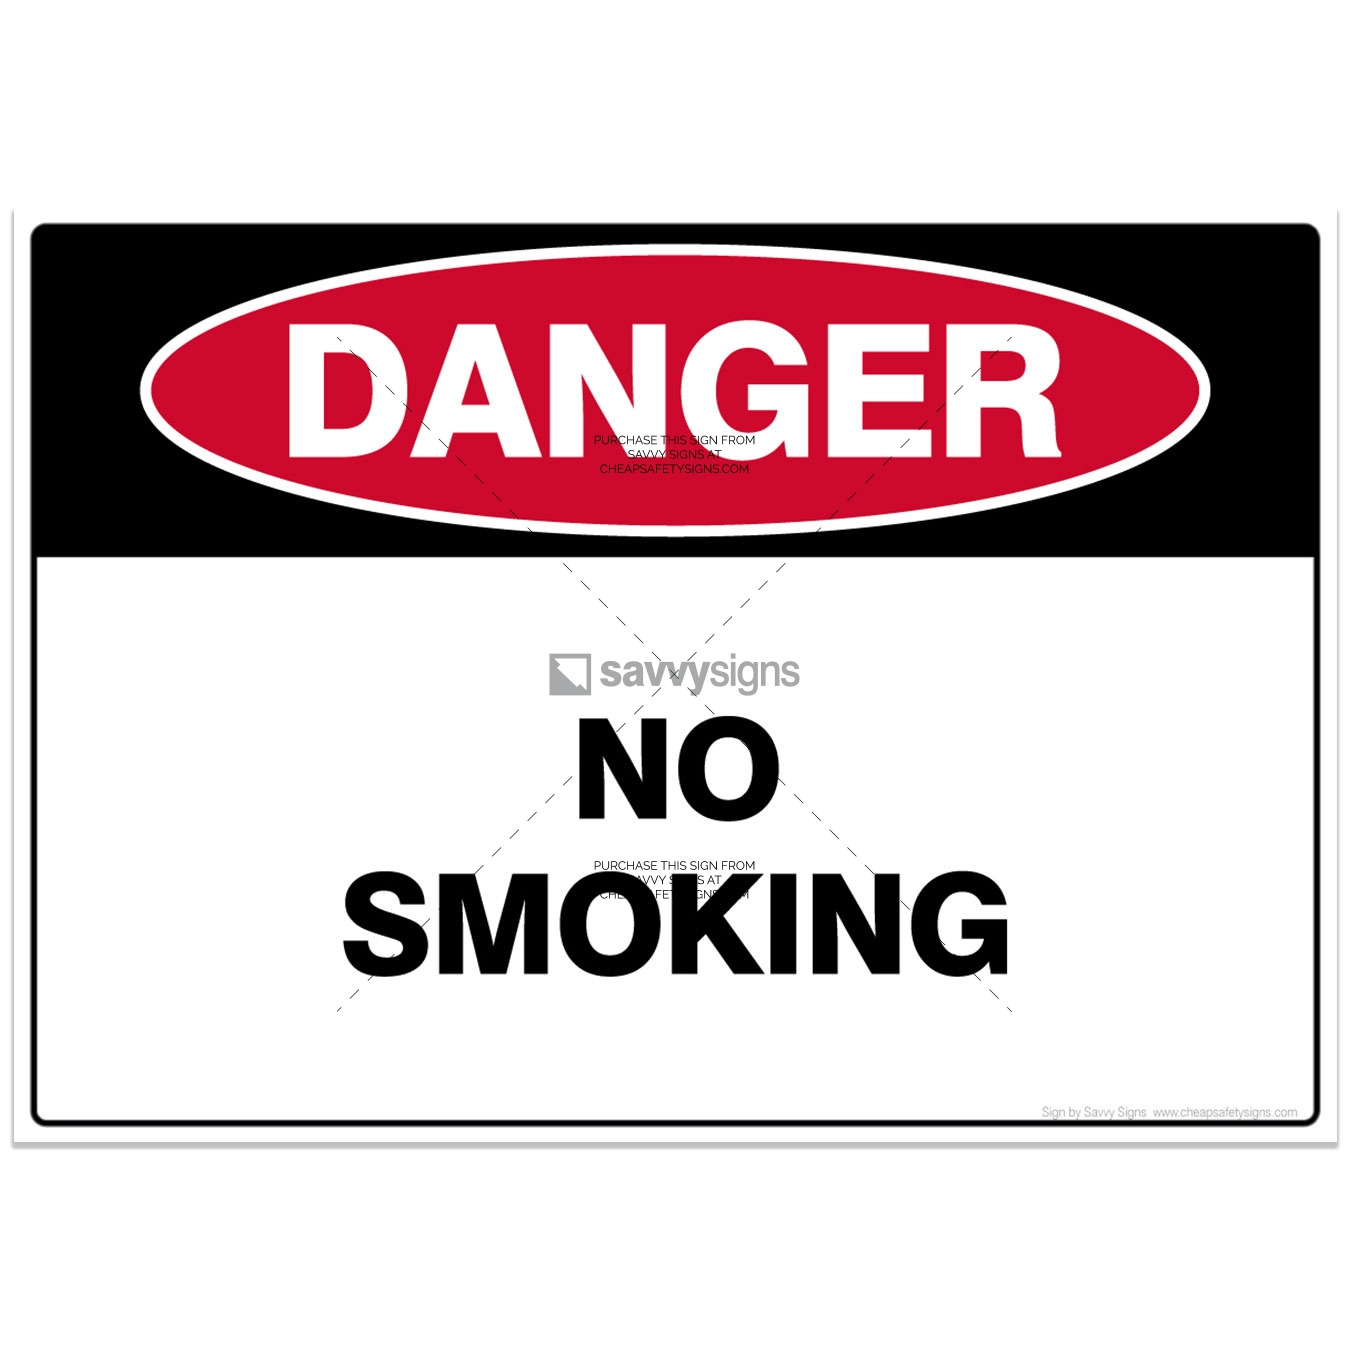 SSDAN3058-DANGER-Workplace-Safety-Signs_Savvy-Signs_v4.1